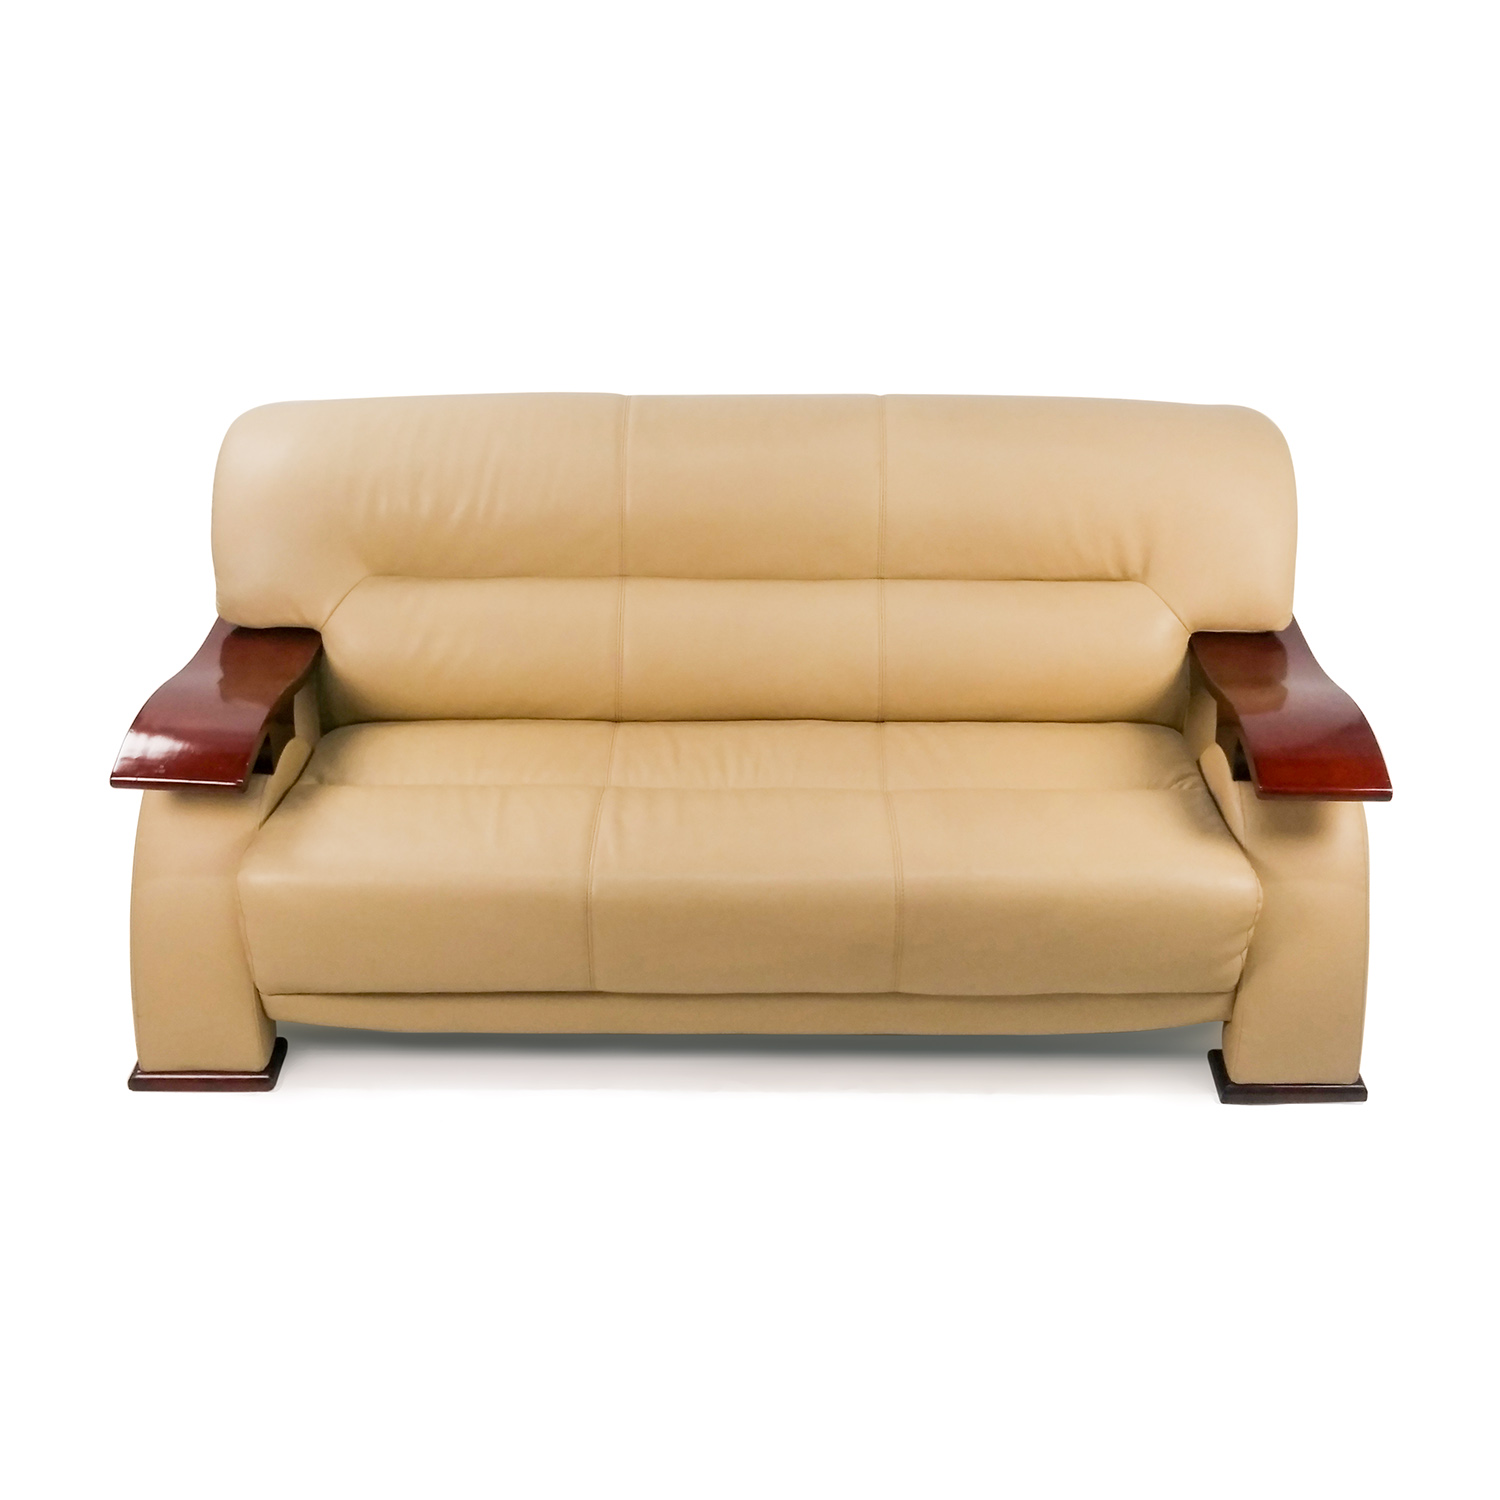 84 Off Unknown Brand Contemporary Beige Leather Sofa With Wood Arms Sofas